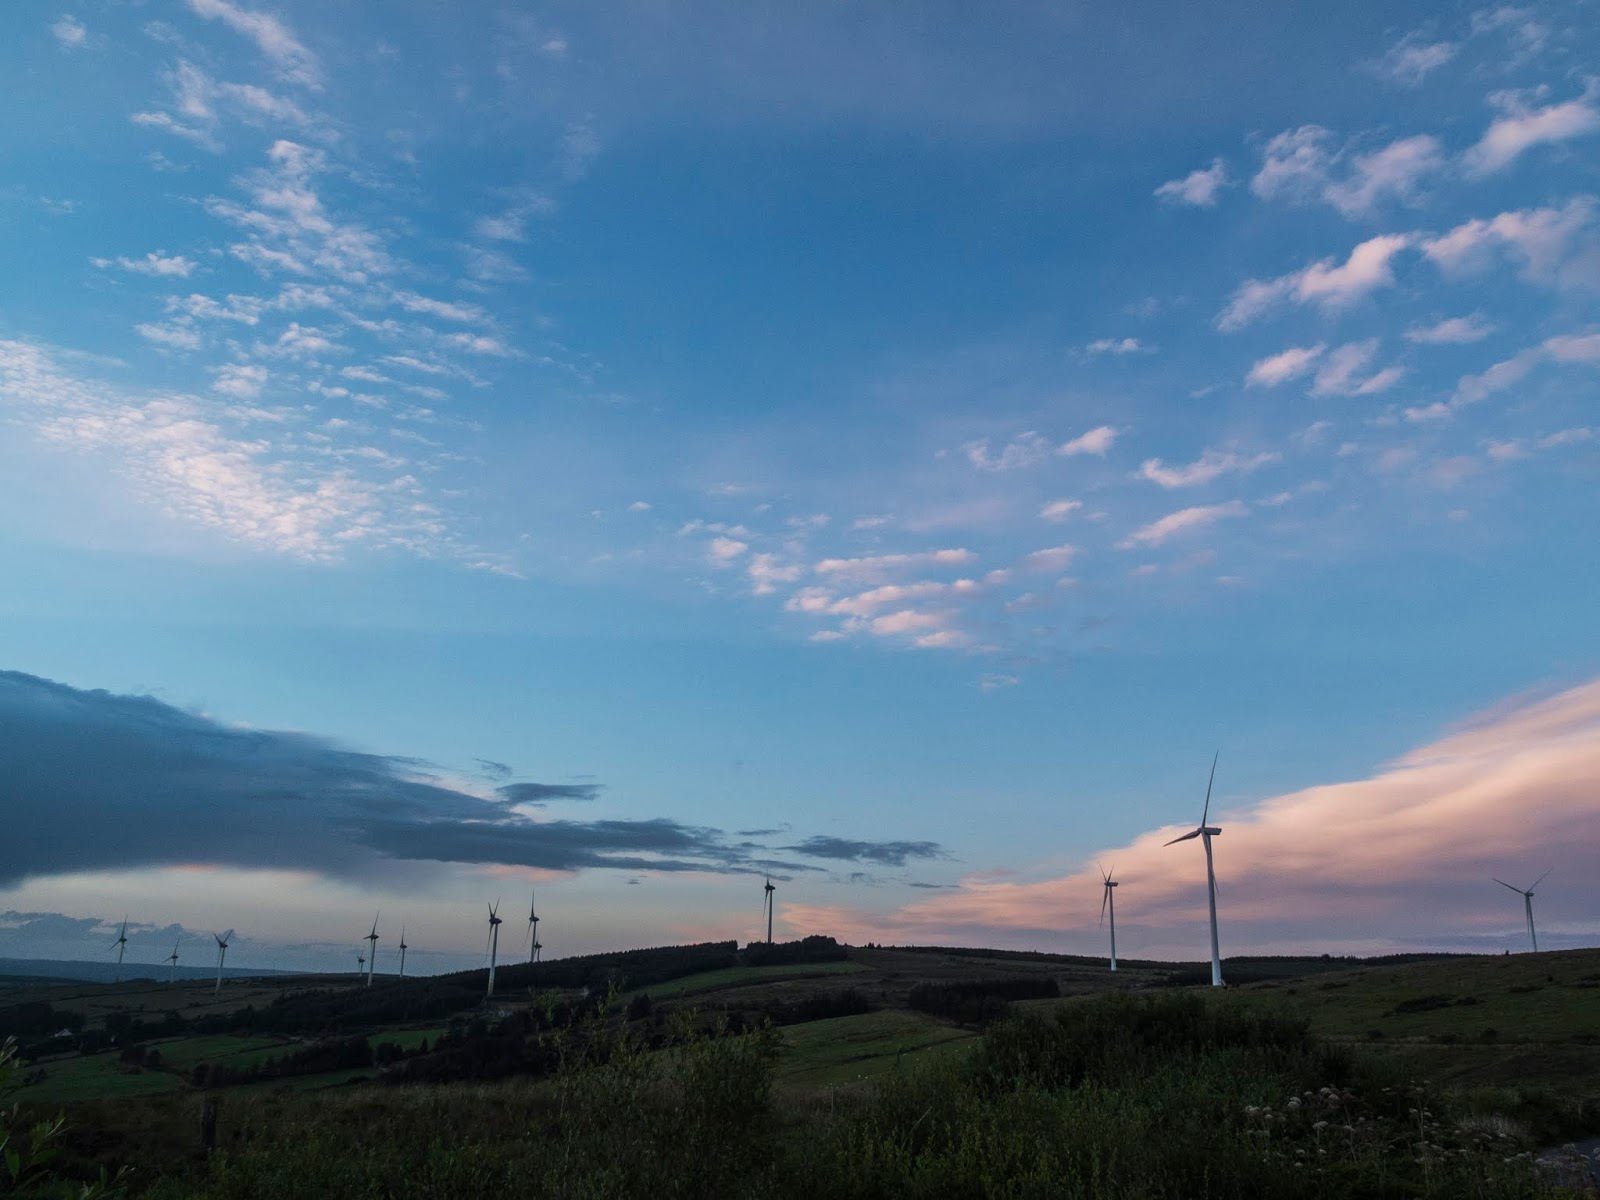 Windmills on top of a hill in the Boggeragh Mountains at sunset.